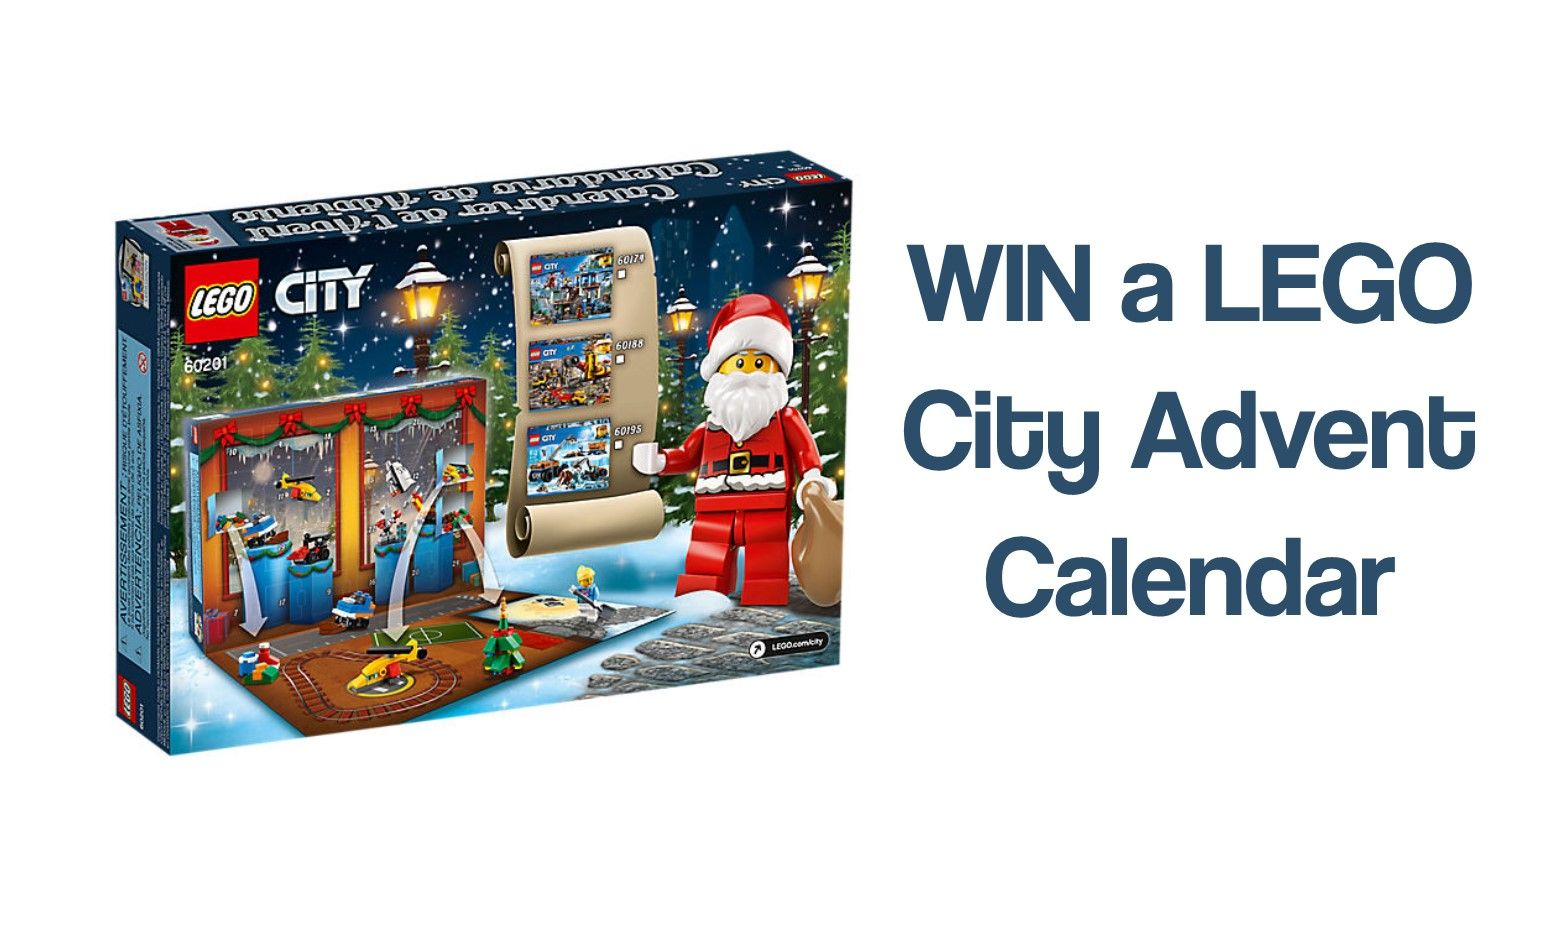 WIN a LEGO City Advent Calendar